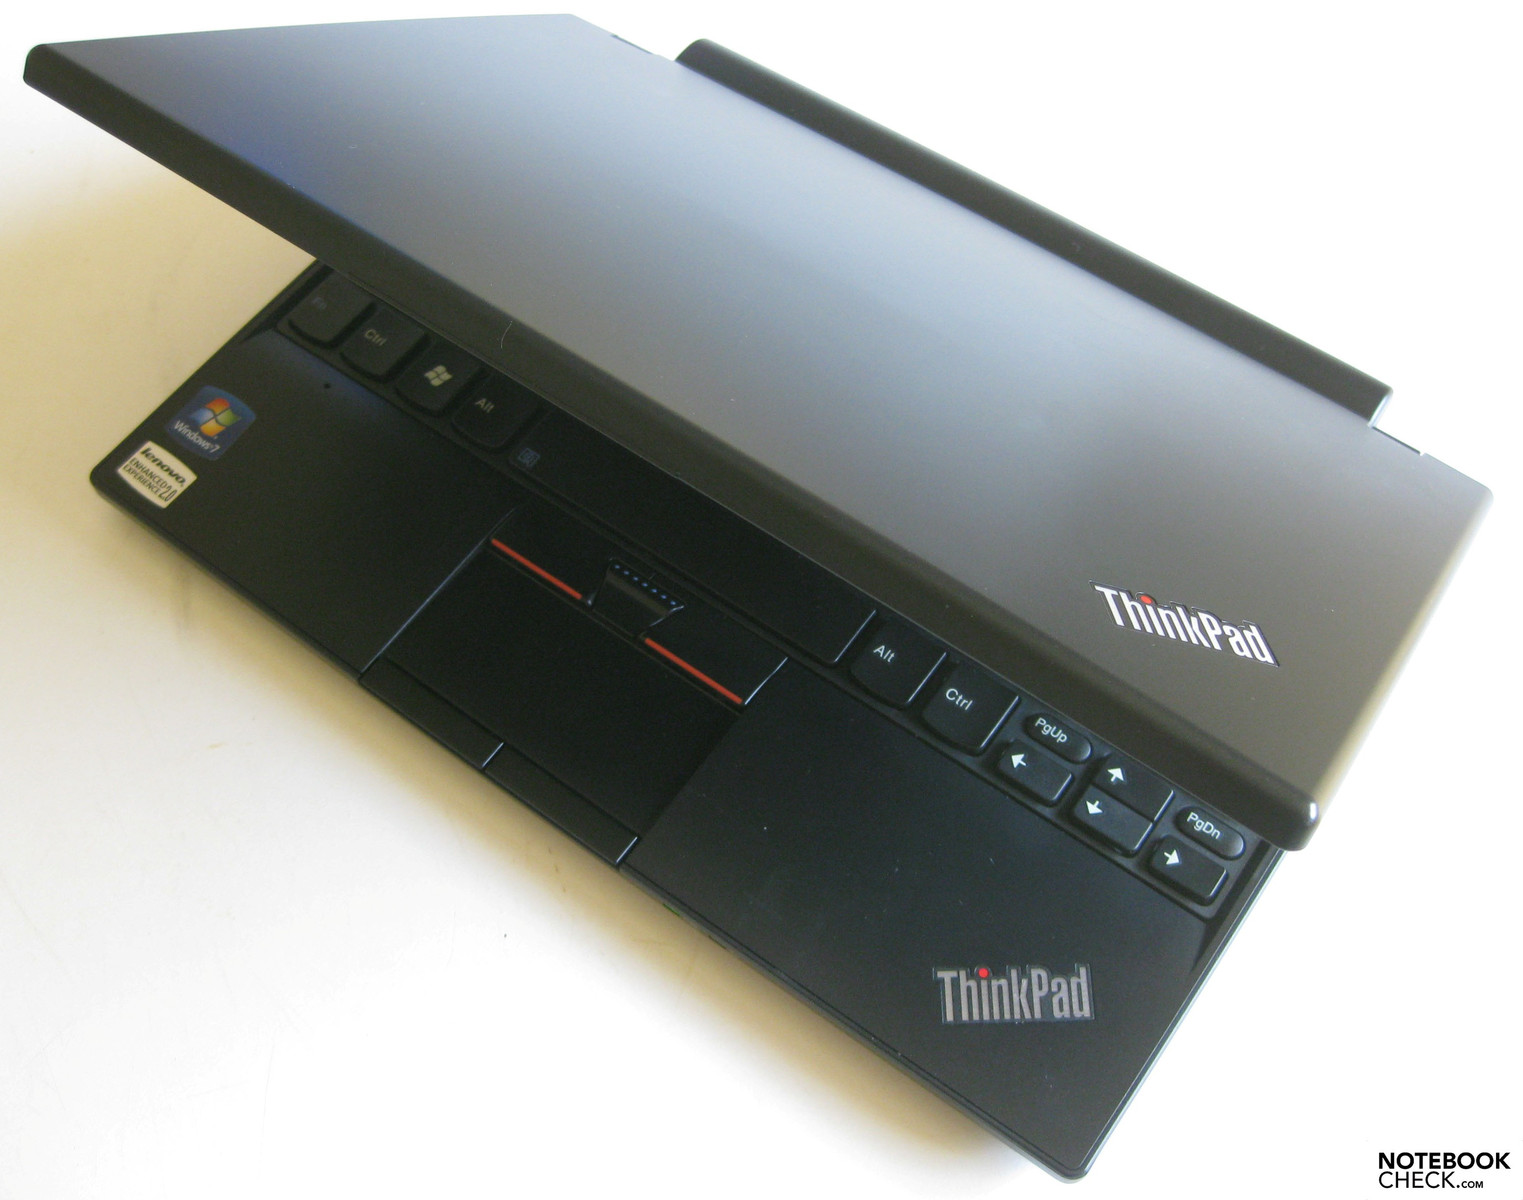 Lenovo ThinkPad X120e Broadcom WLAN 64 Bit